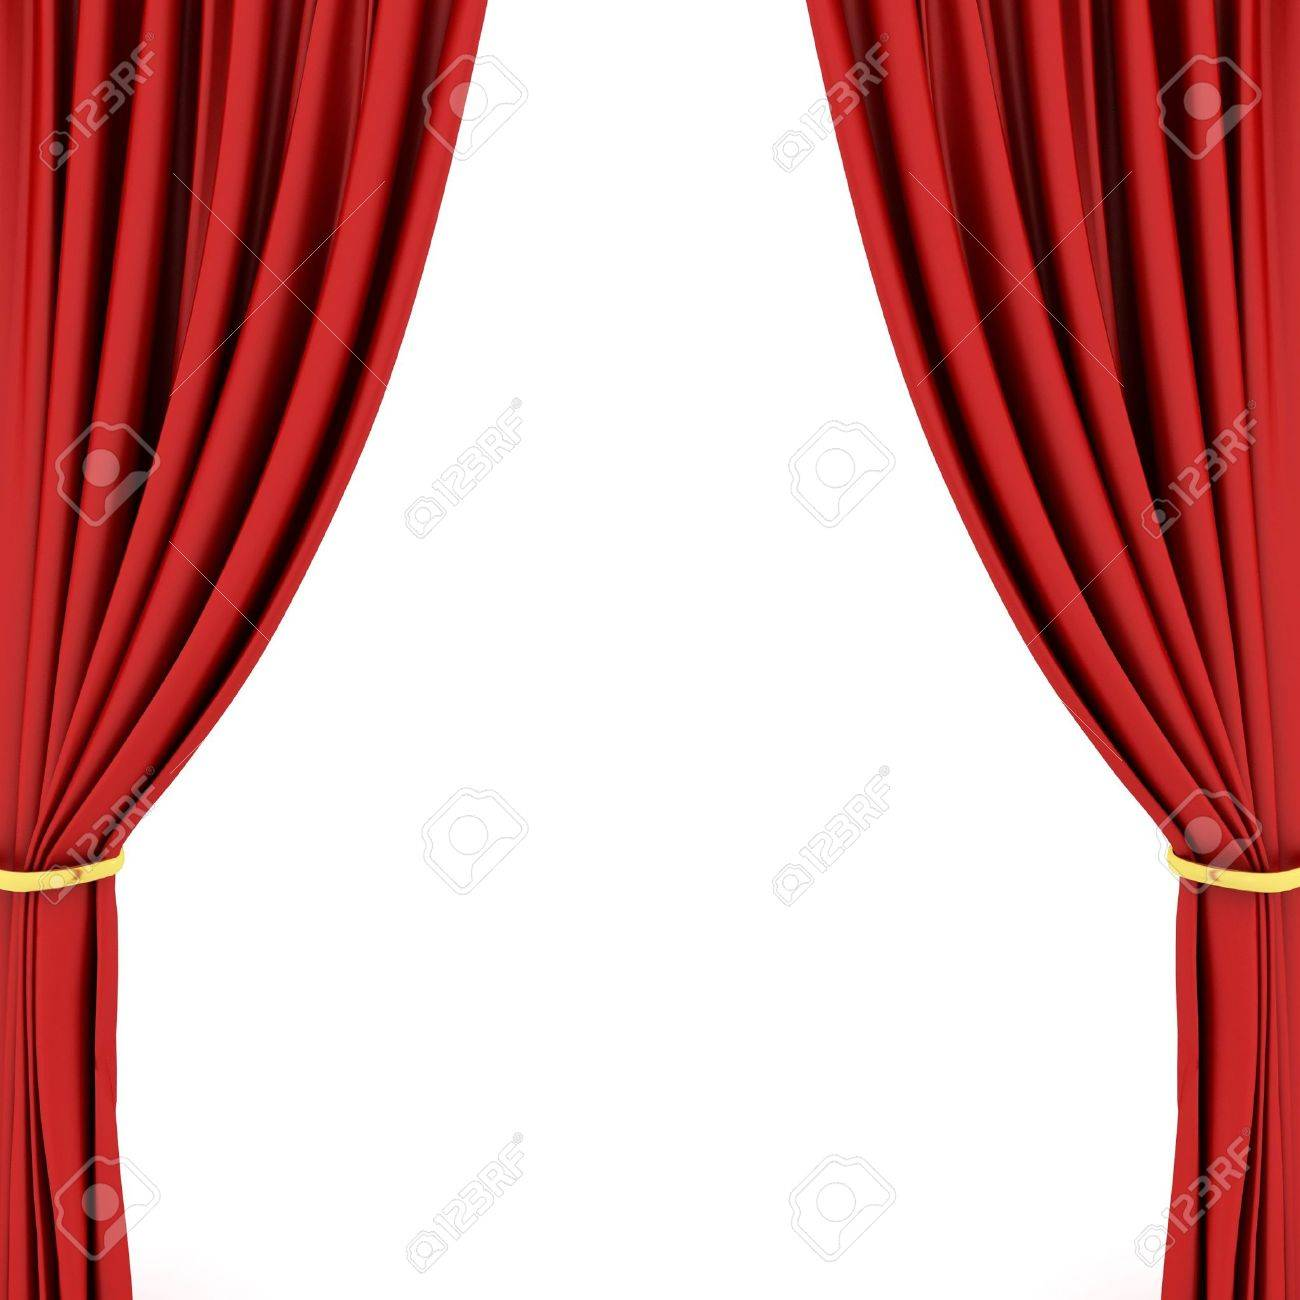 Red theater curtain Stock Photo - 6490821